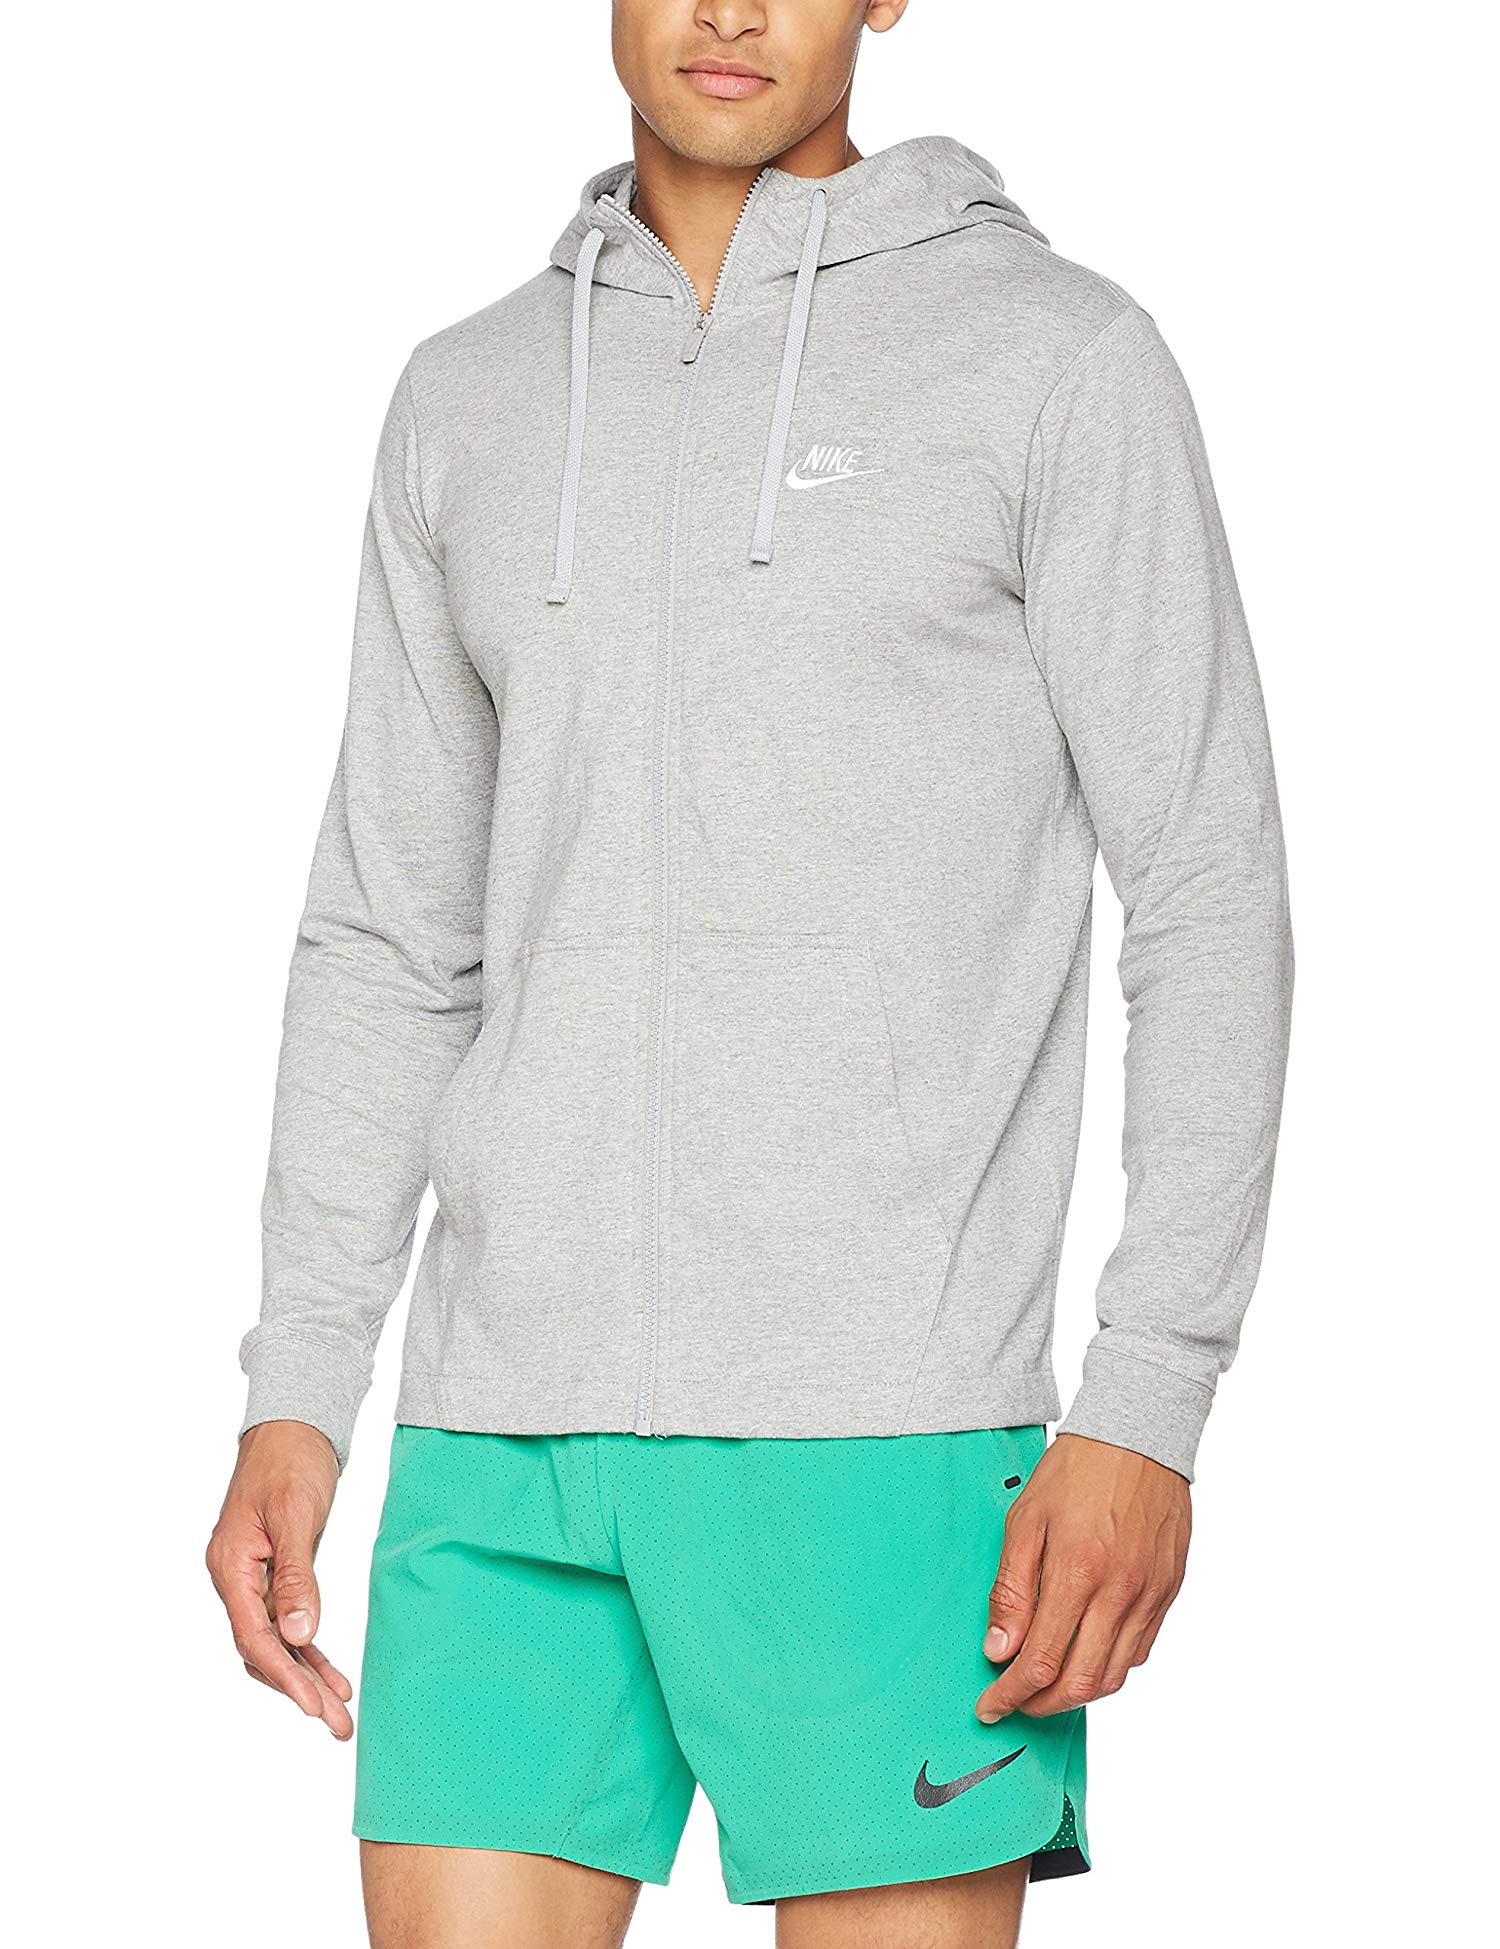 12b0a25086dc8 Nike Mens Sportswear Jersey Club Full-Zip Hoodie. Item Description. Brand:  Nike. Condition: New with tags. Color: DK Grey Heather/White